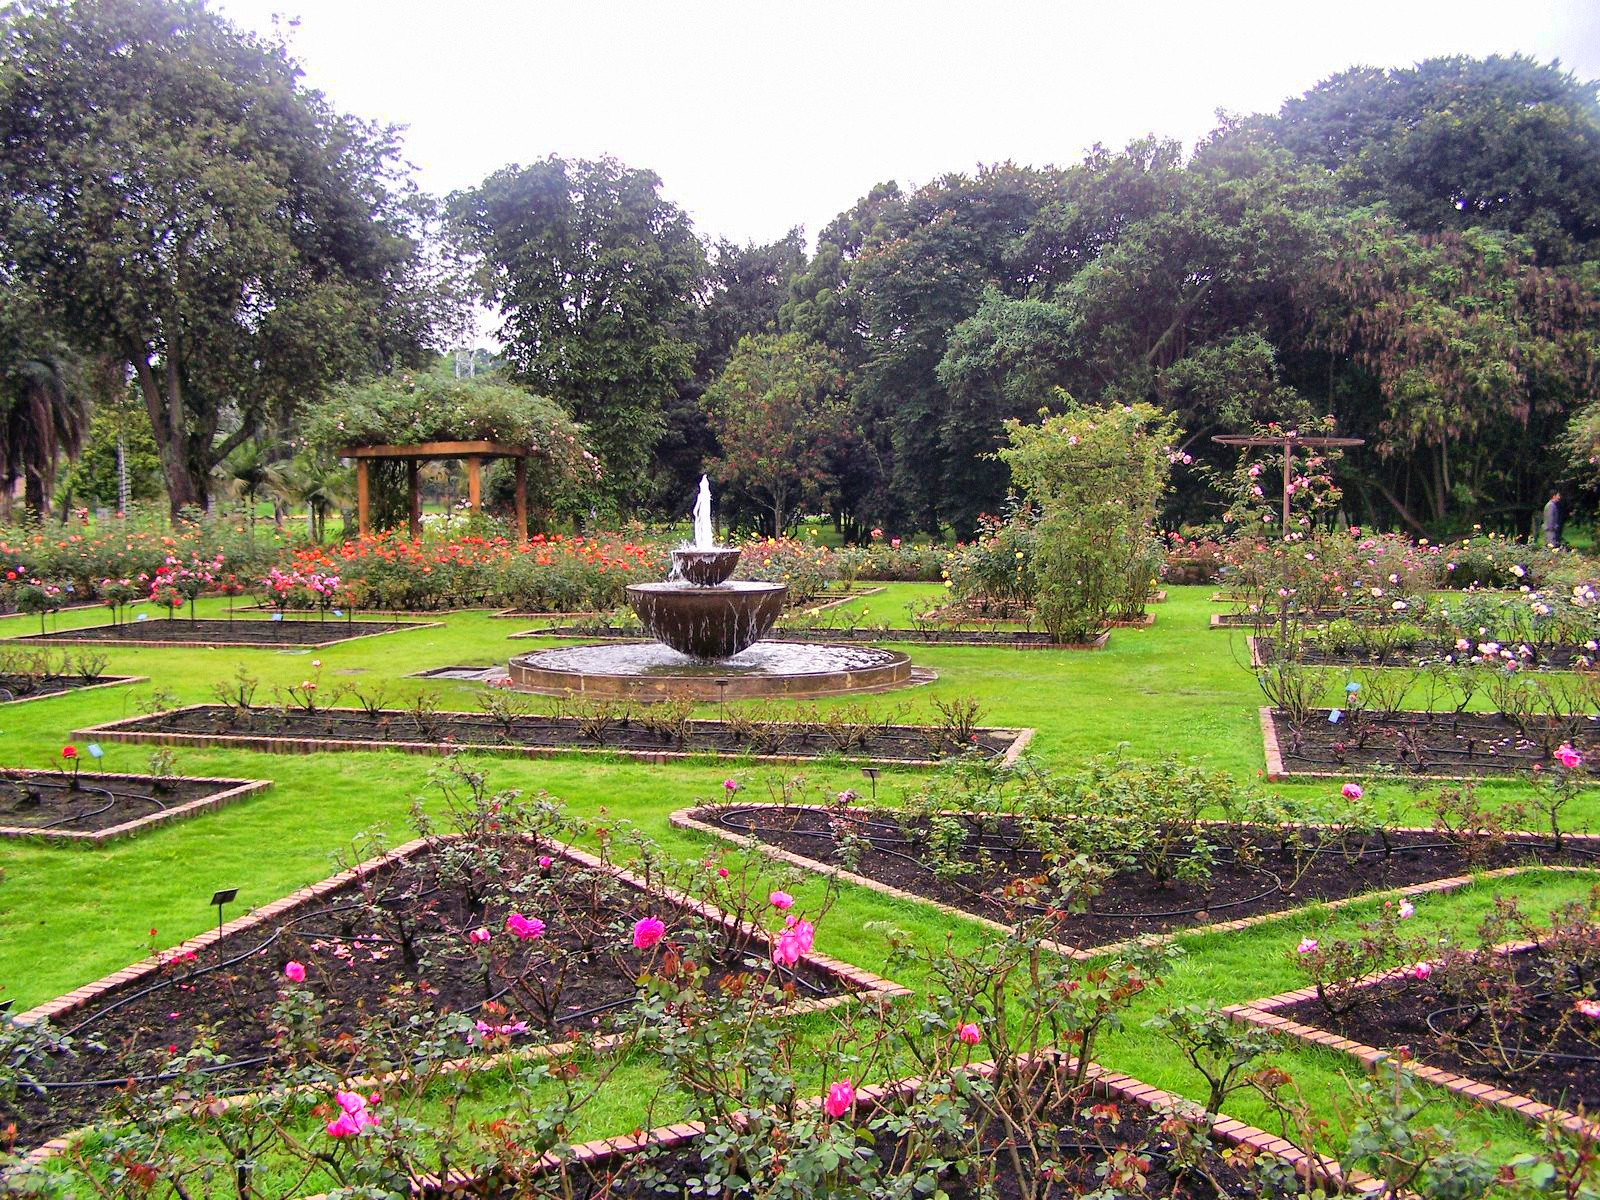 One of my favorite places in the world bogota botanical garden jardin botanico de bogota for Jardin 00 garden